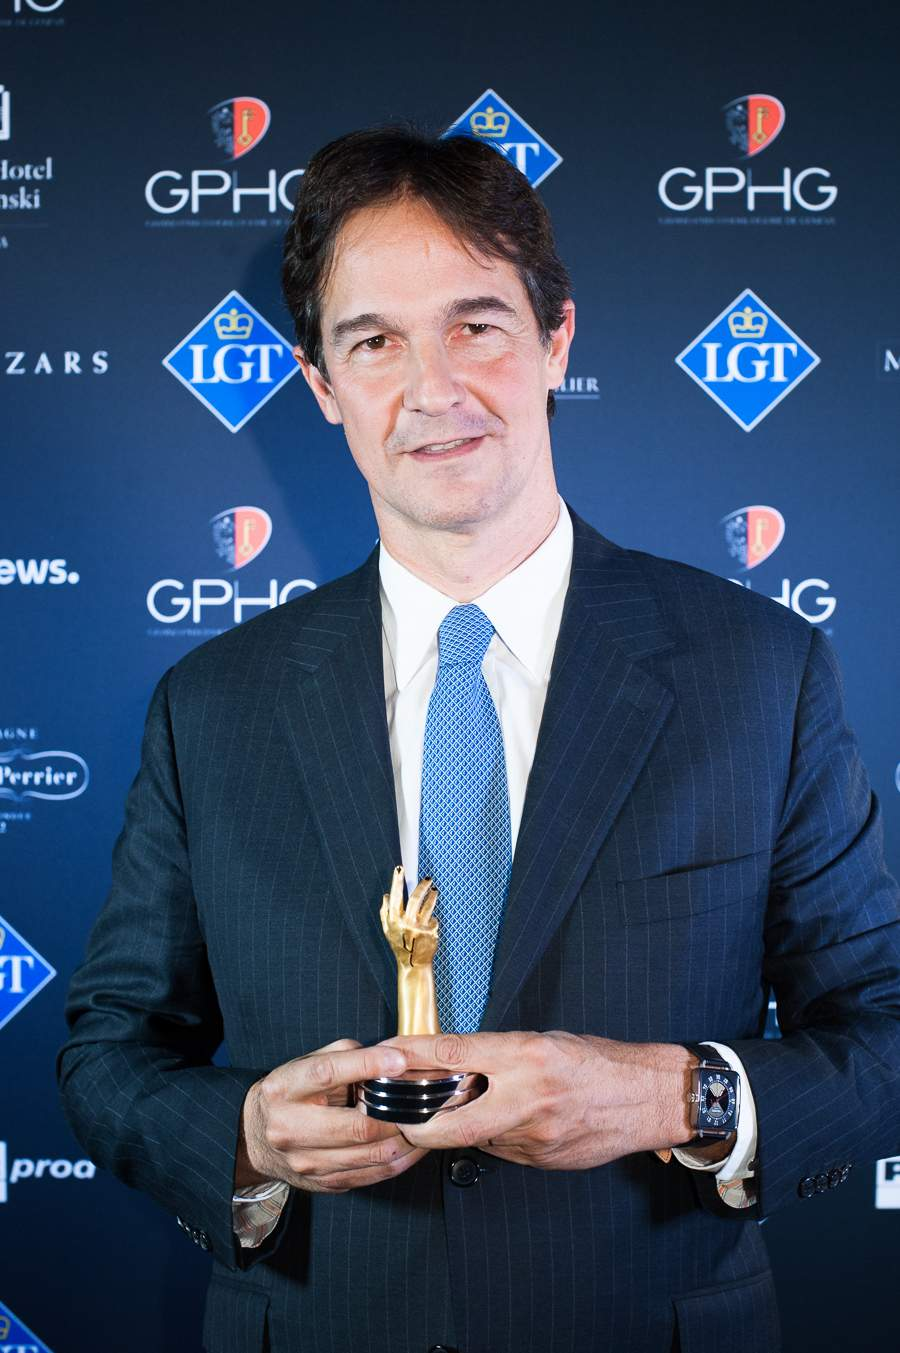 Laurent Dordet, La Montre Hermès CEO, winner of the Artistic Crafts Watch Prize 2018